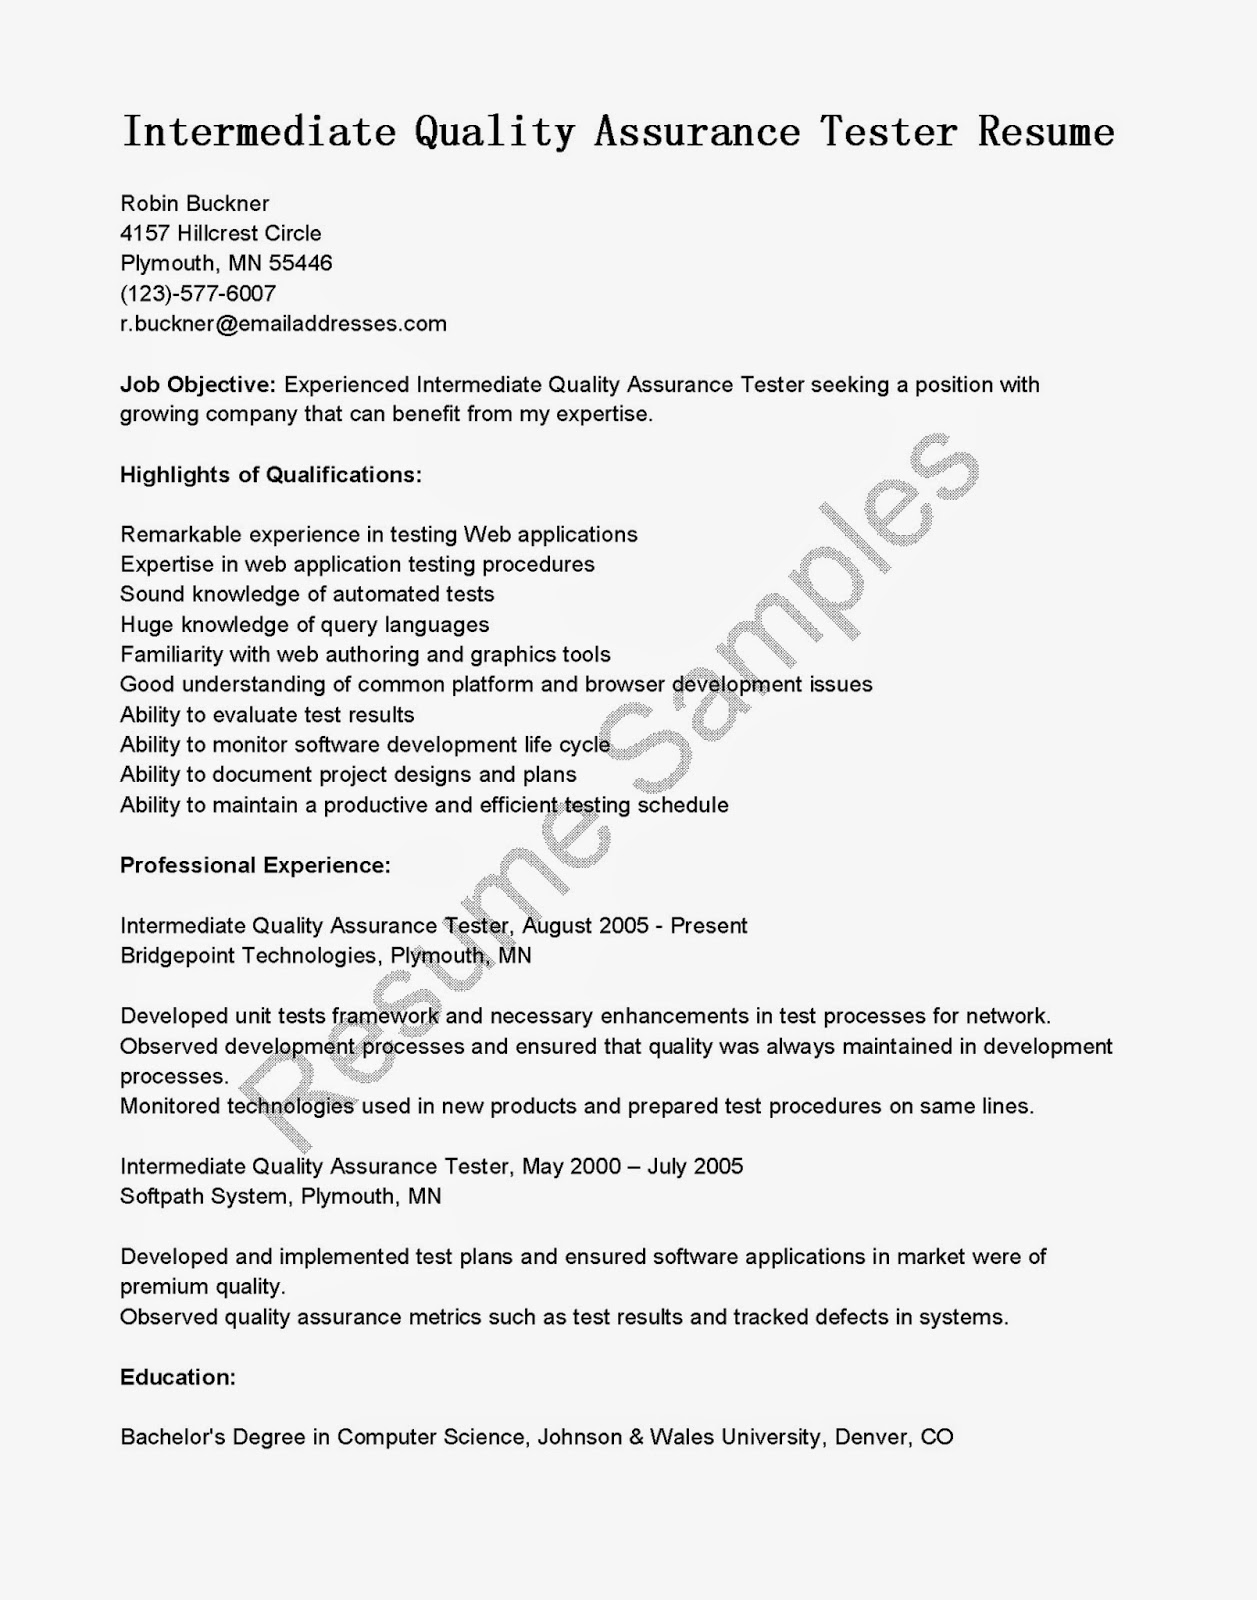 Resume Law School Graduate Docstoc Comhow To Graduate School Law School  Resume Format Yale Law School